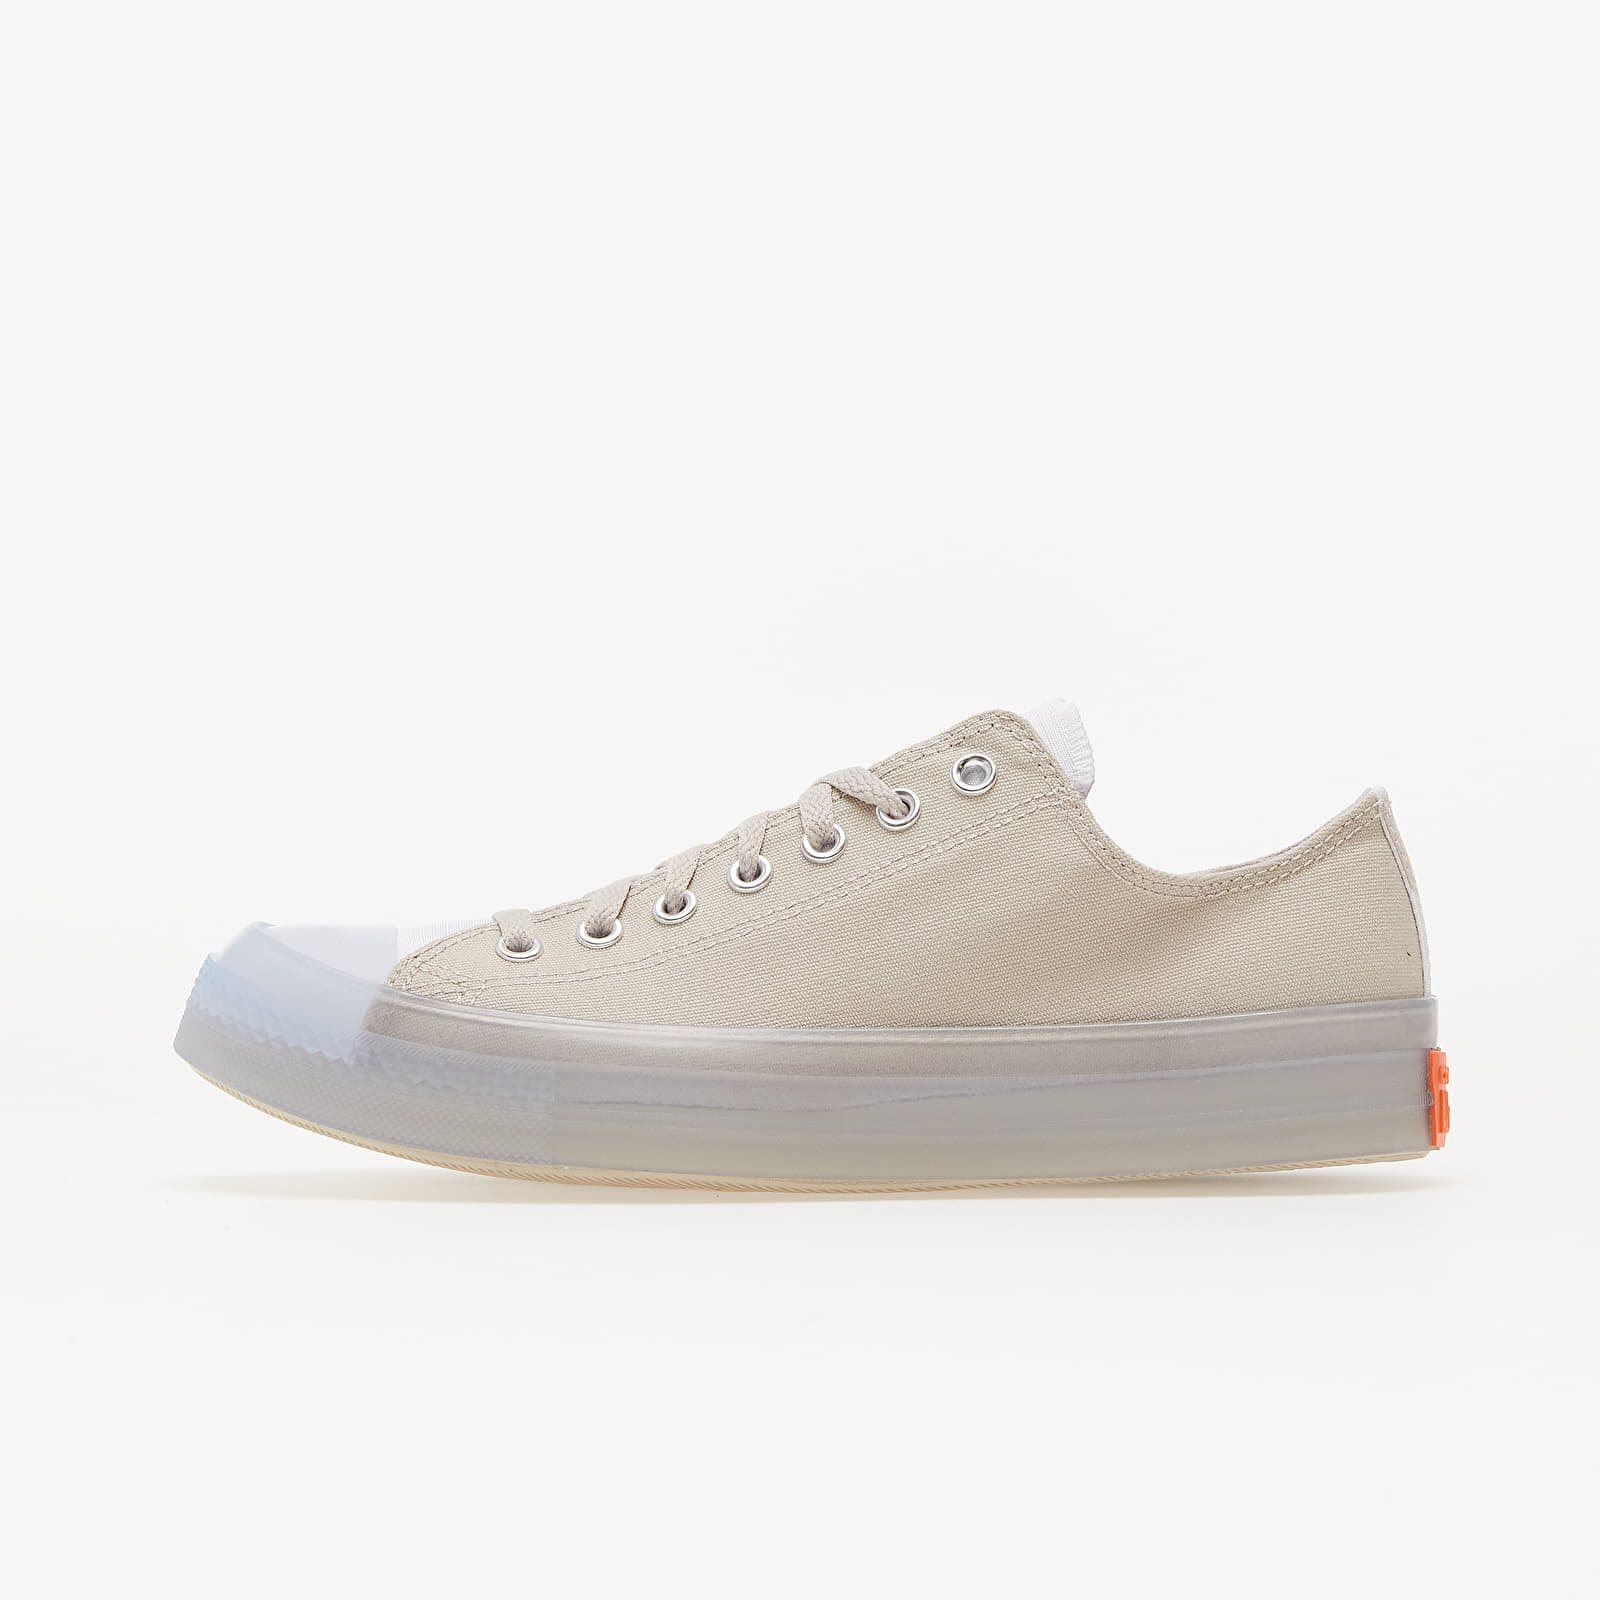 Converse Chuck Taylor All Star CX Canvas And Ripstop String/ White/ Wild Mango